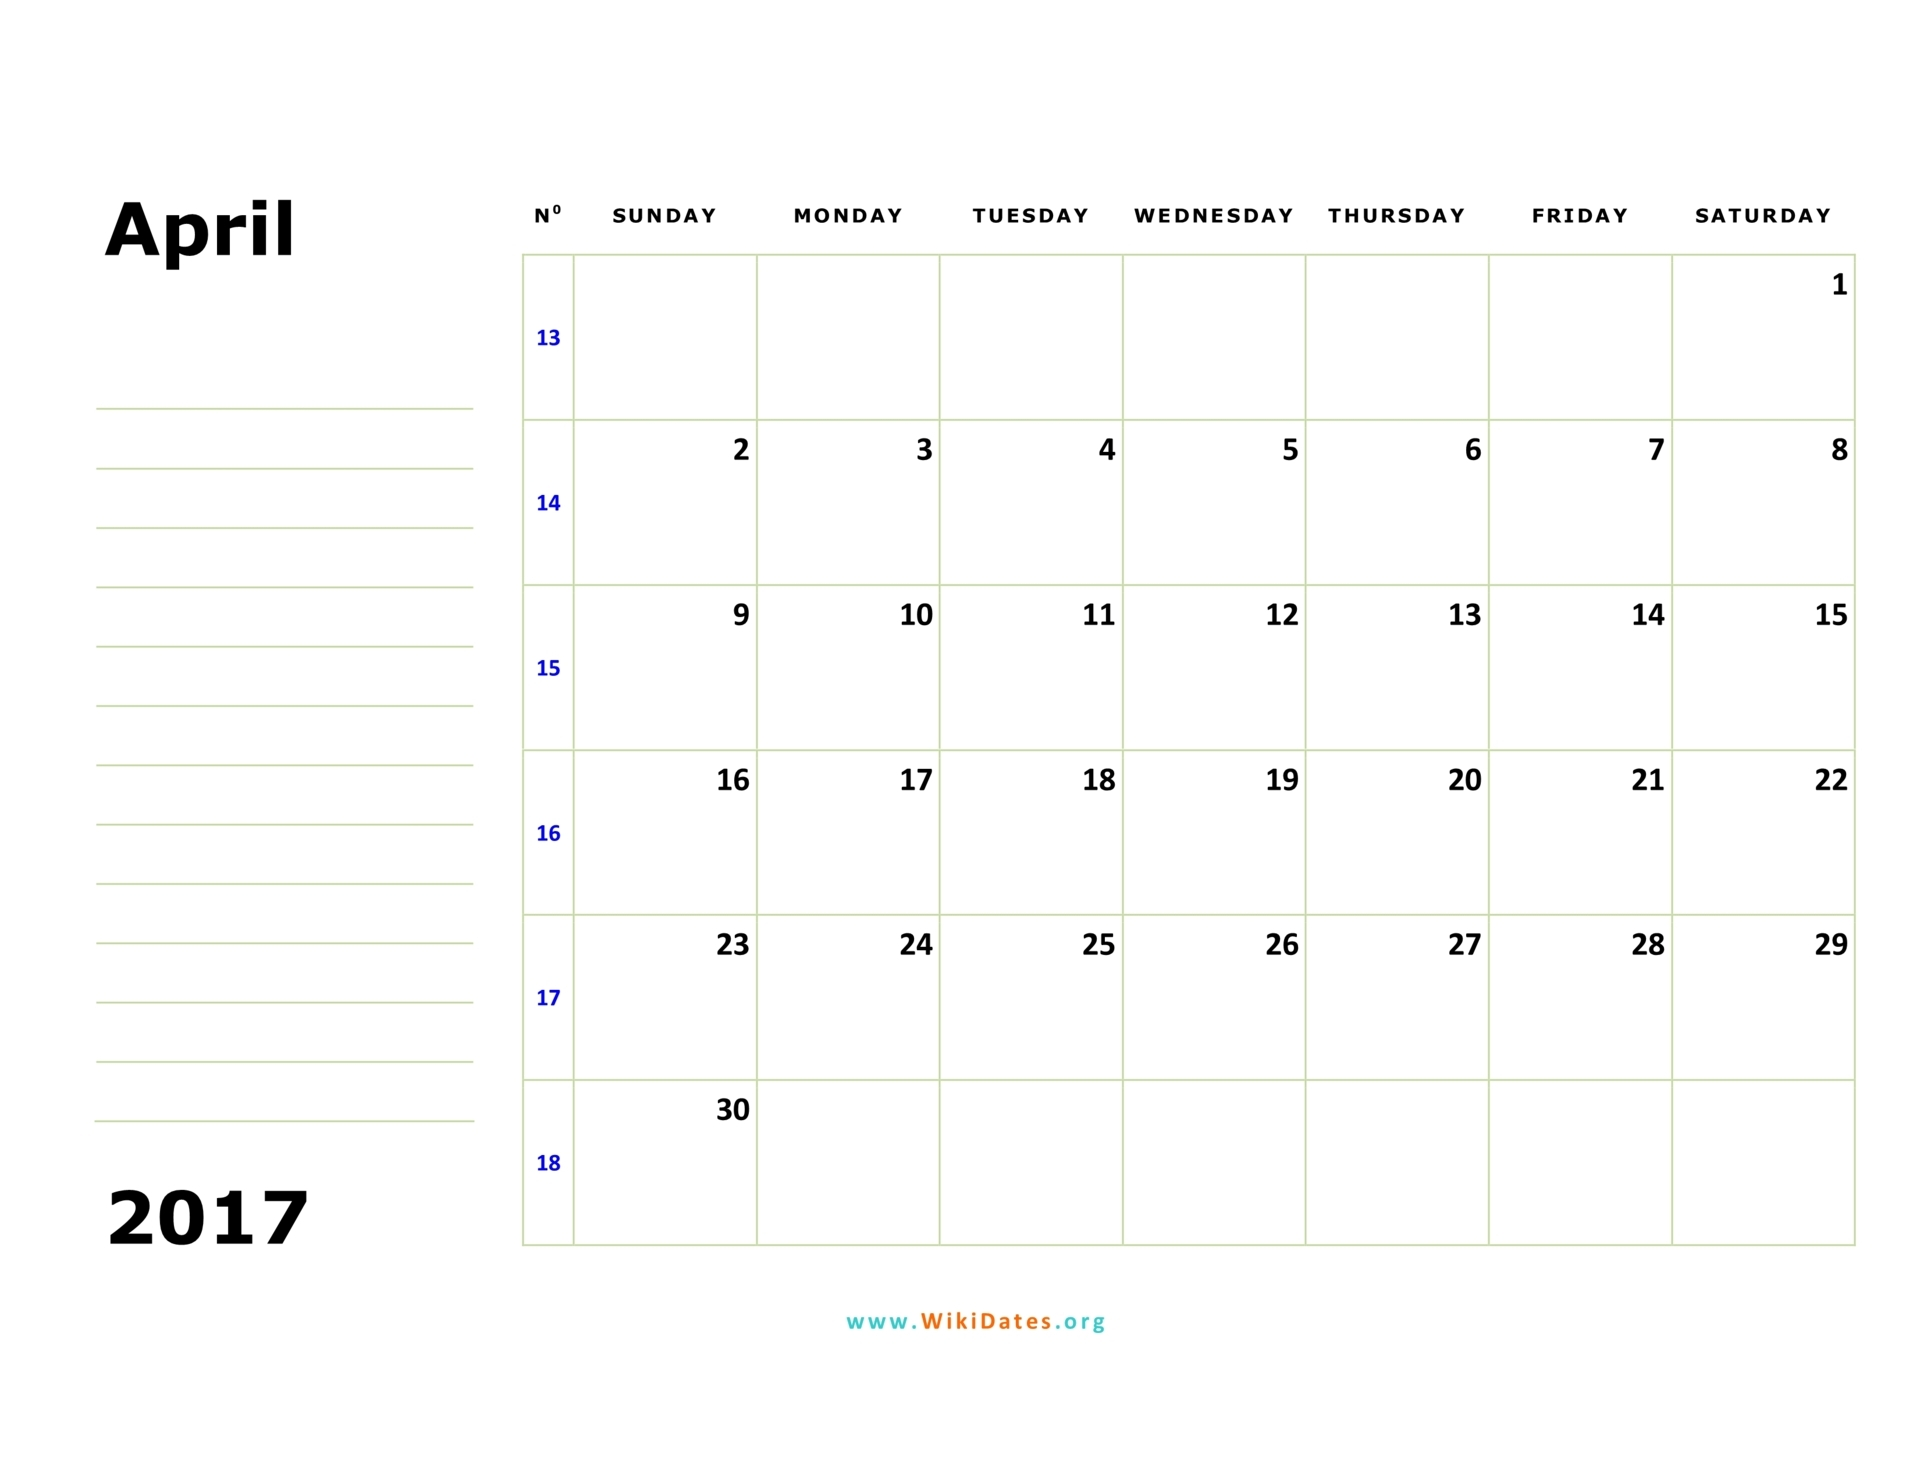 April 2017 Calendar | WikiDates.org